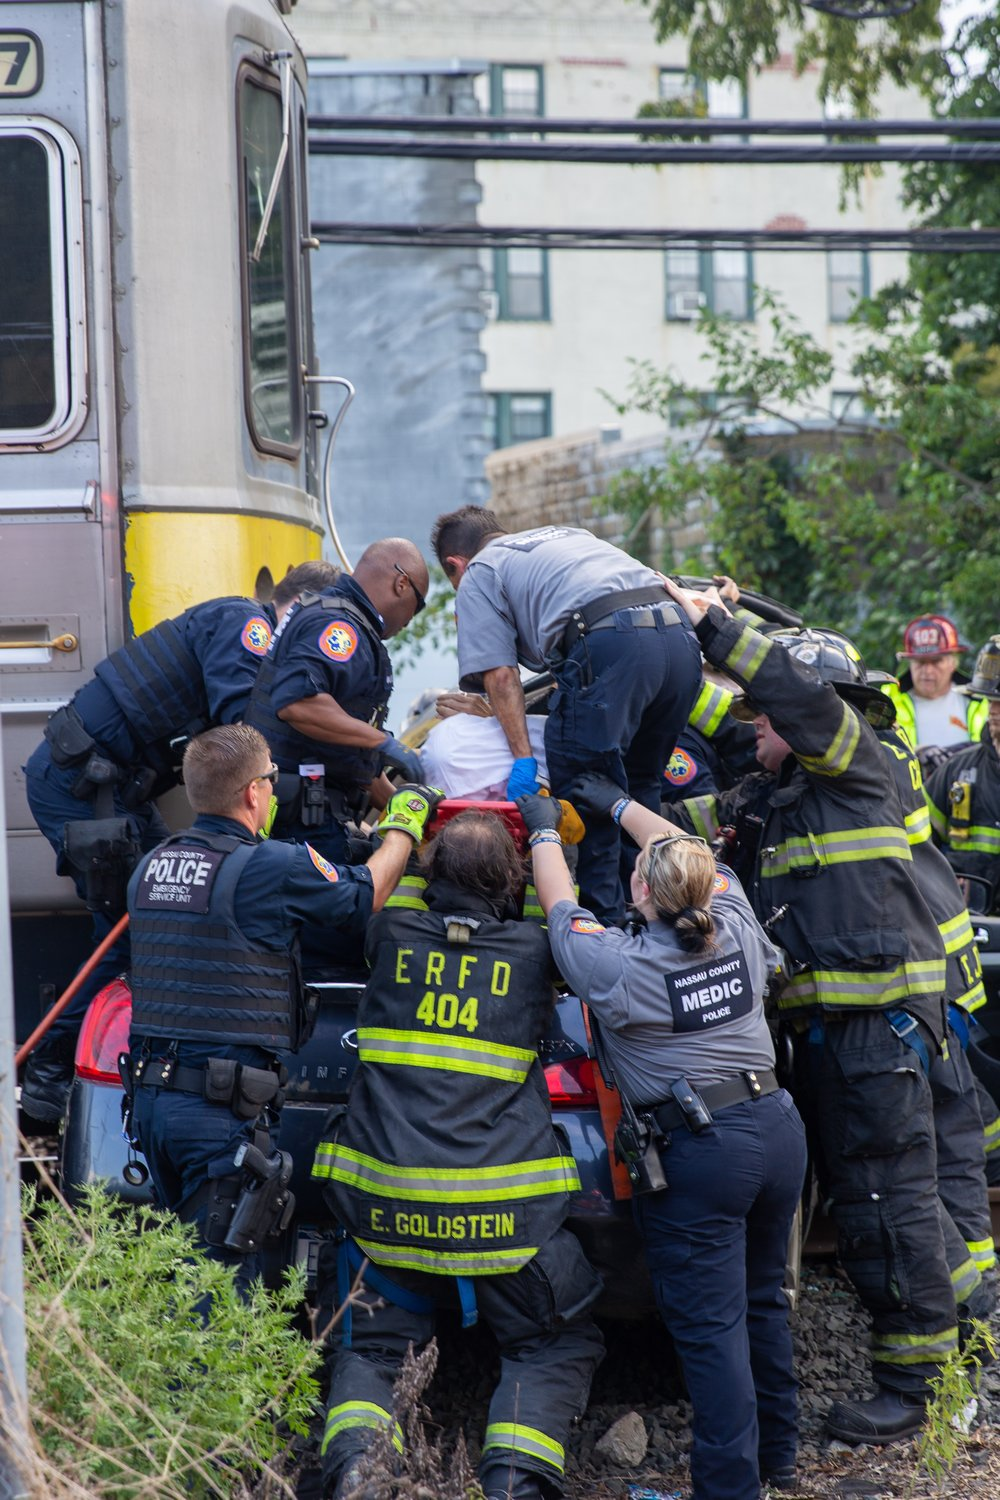 The East Rockaway Fire Department and other emergency crews arrived on the scene to lift the car off the tracks and aid the unidentified driver.